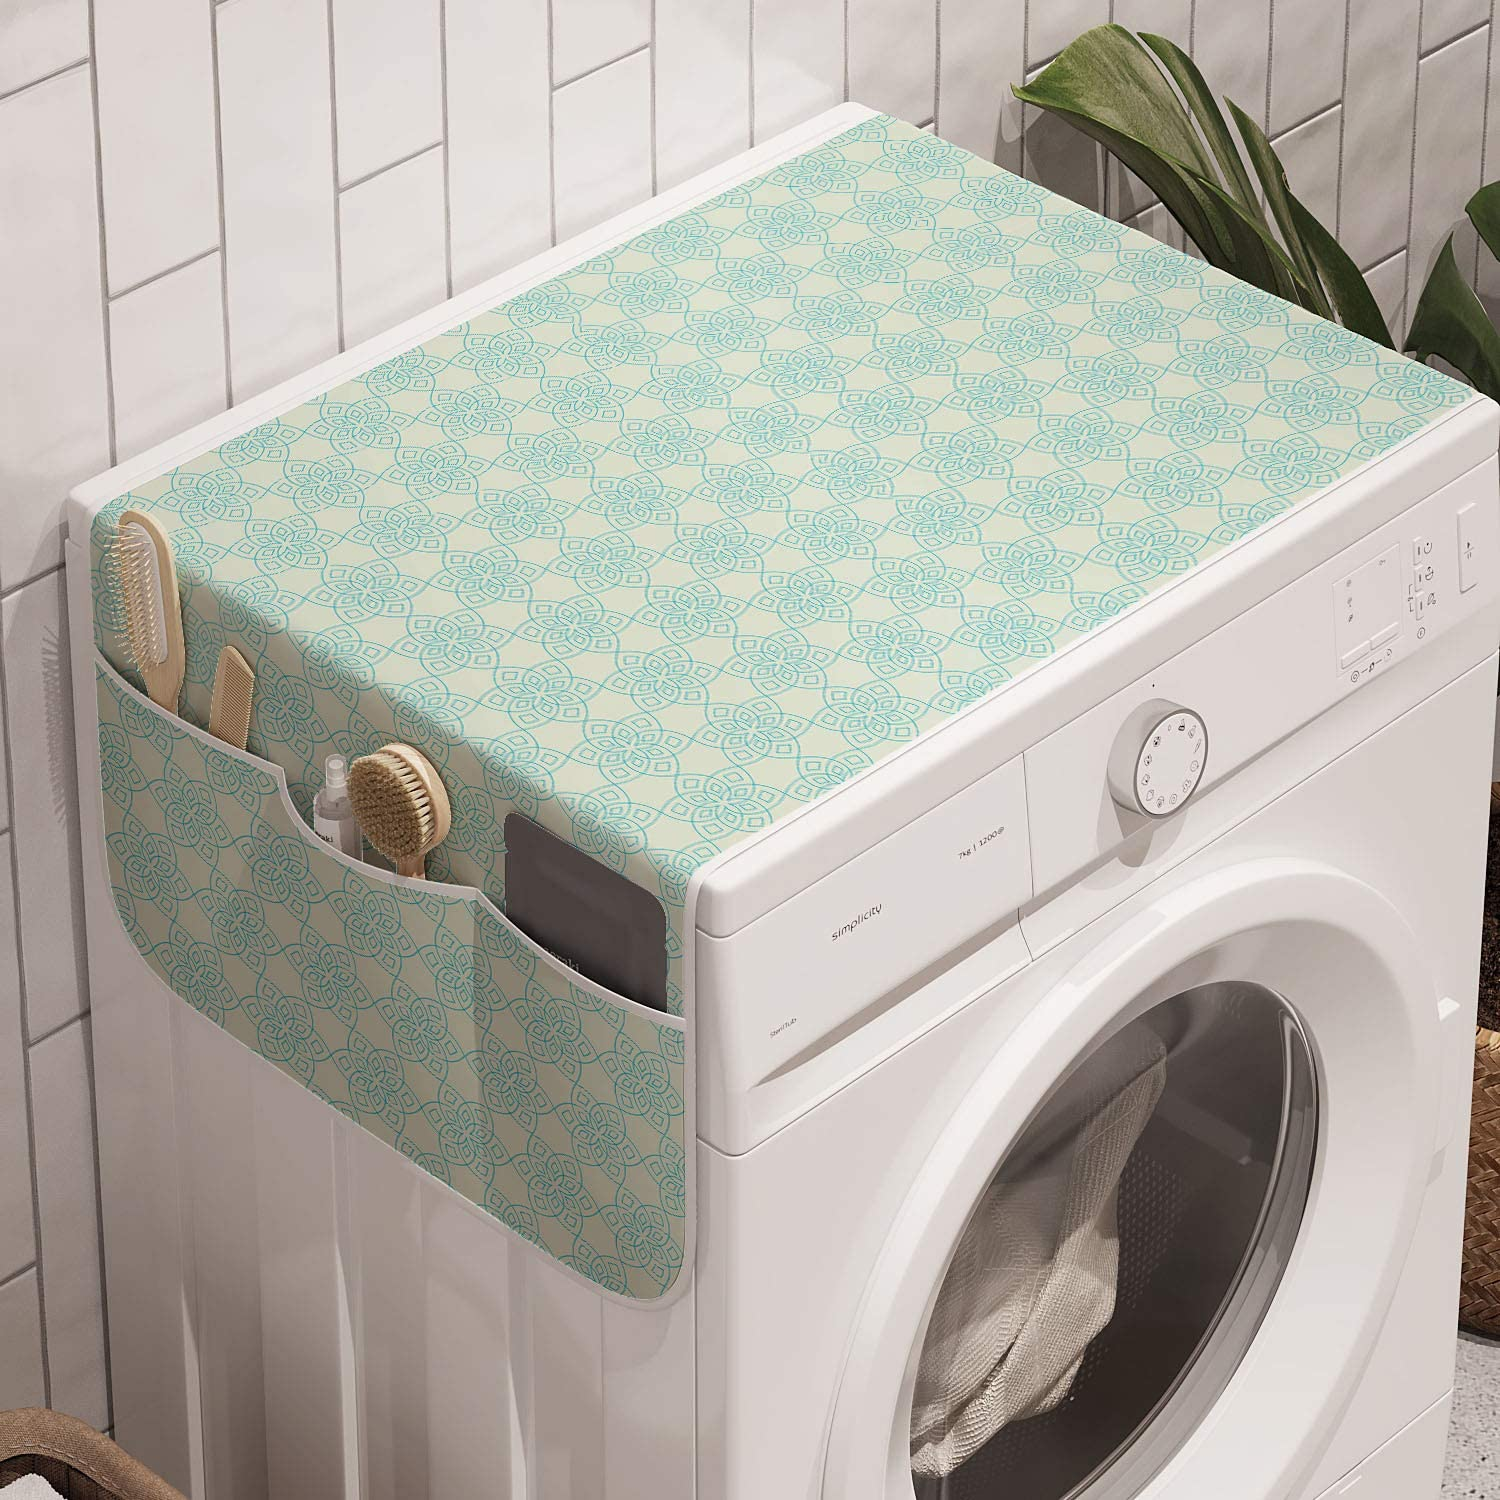 Amazon Com Ambesonne Ethnic Washing Machine Organizer Abstract Pattern With Outline Floral Lineart Oriental Motif Repetition Anti Slip Fabric Cover For Washers And Dryers 47 X 18 5 Pale Green And Pale Blue Kitchen